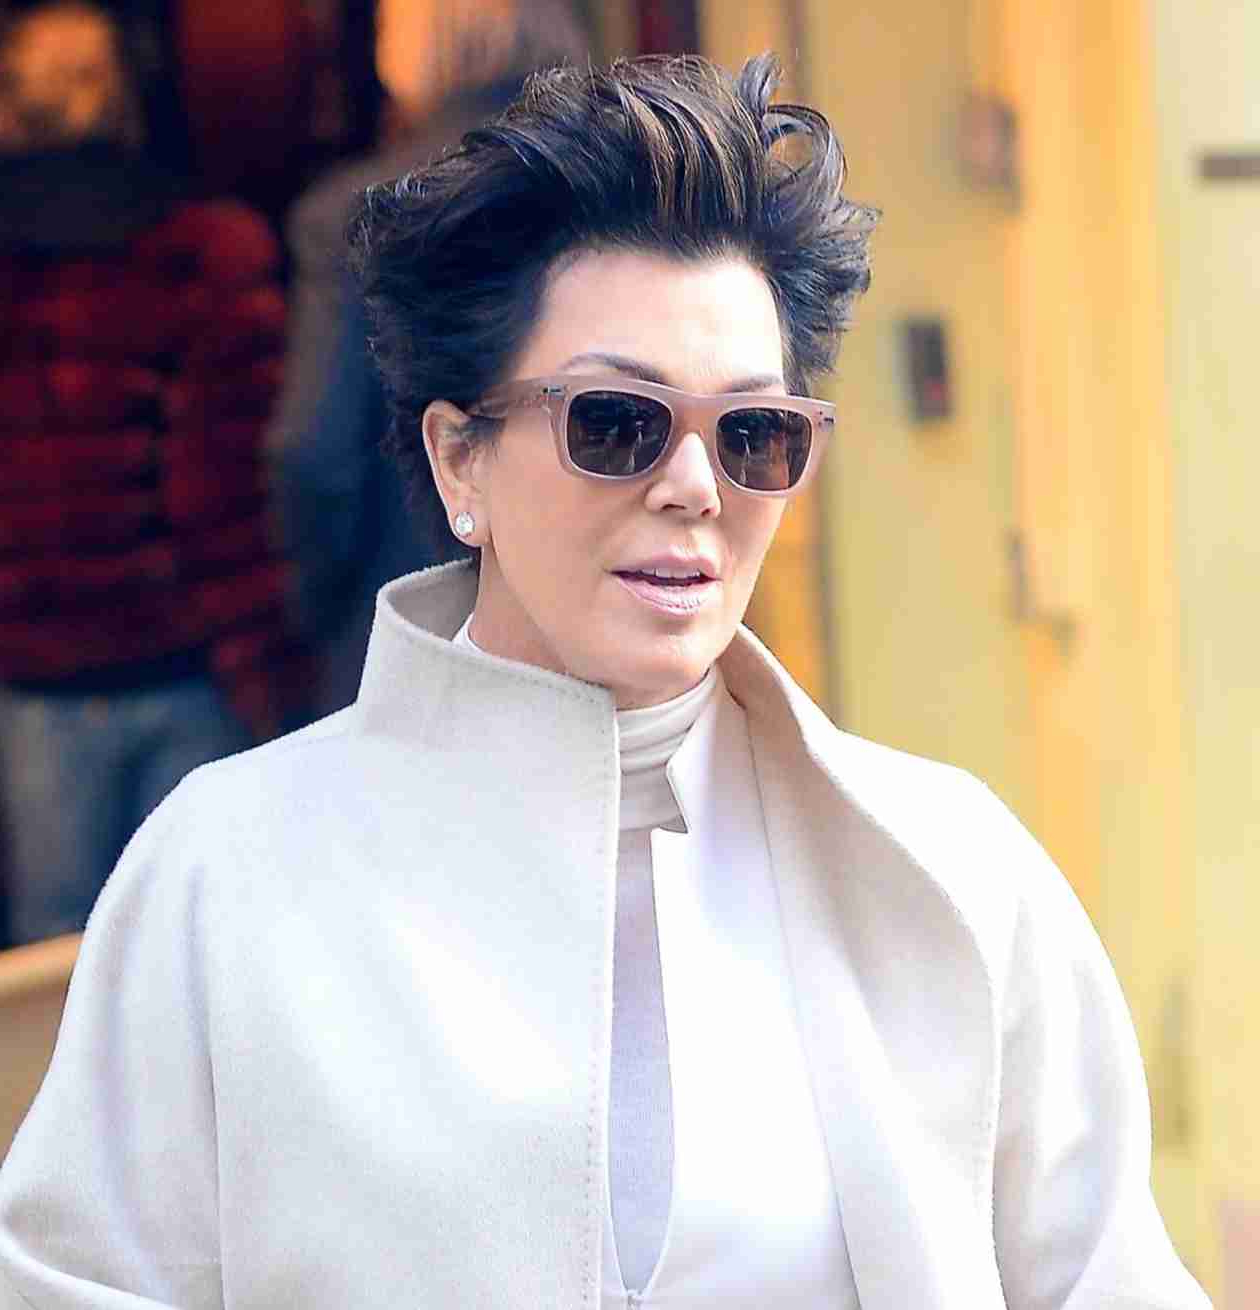 Kris Jenner Shows Off Crazy New Hairstyle While Wearing The Same Regarding Short Haircuts Kris Jenner (View 18 of 25)